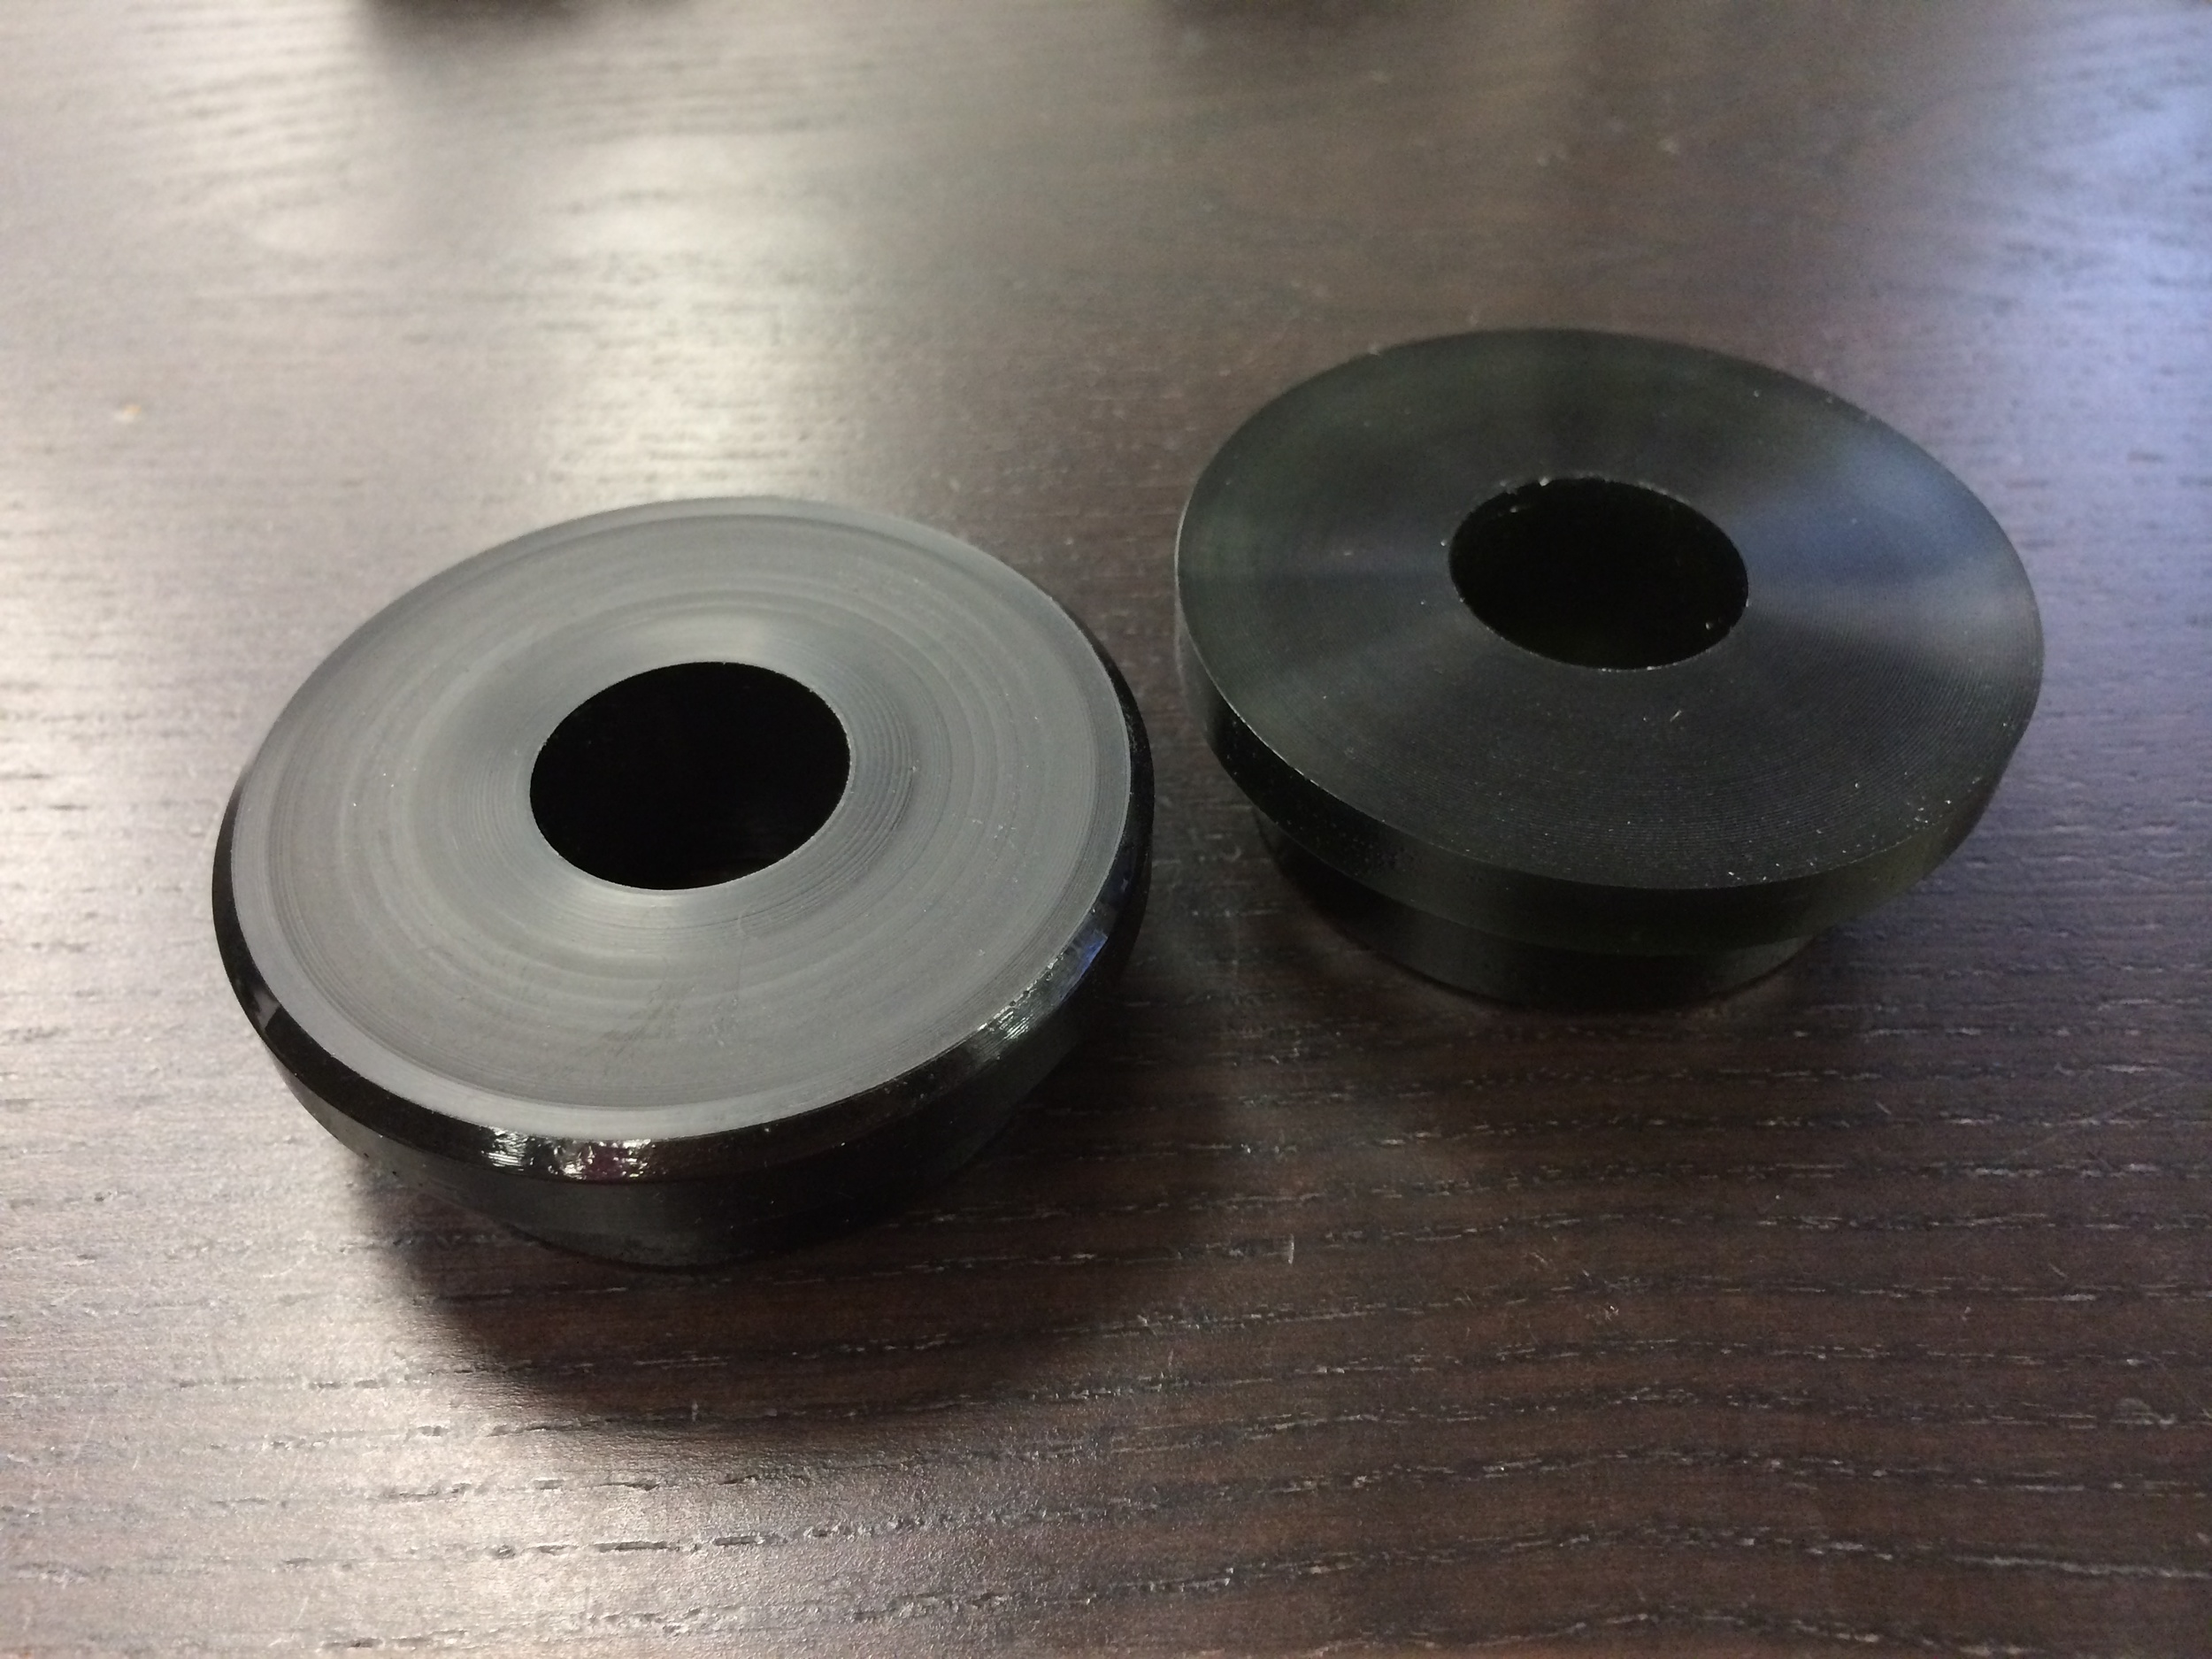 COMPARISON: On the left, the new Class 1 Street Urethane for the Torq R3. The new compound is opaque and has a chamfered flange.  On the right, the previous Street Urethane for the Torq R3. The discontinued bushings are slightly translucent.